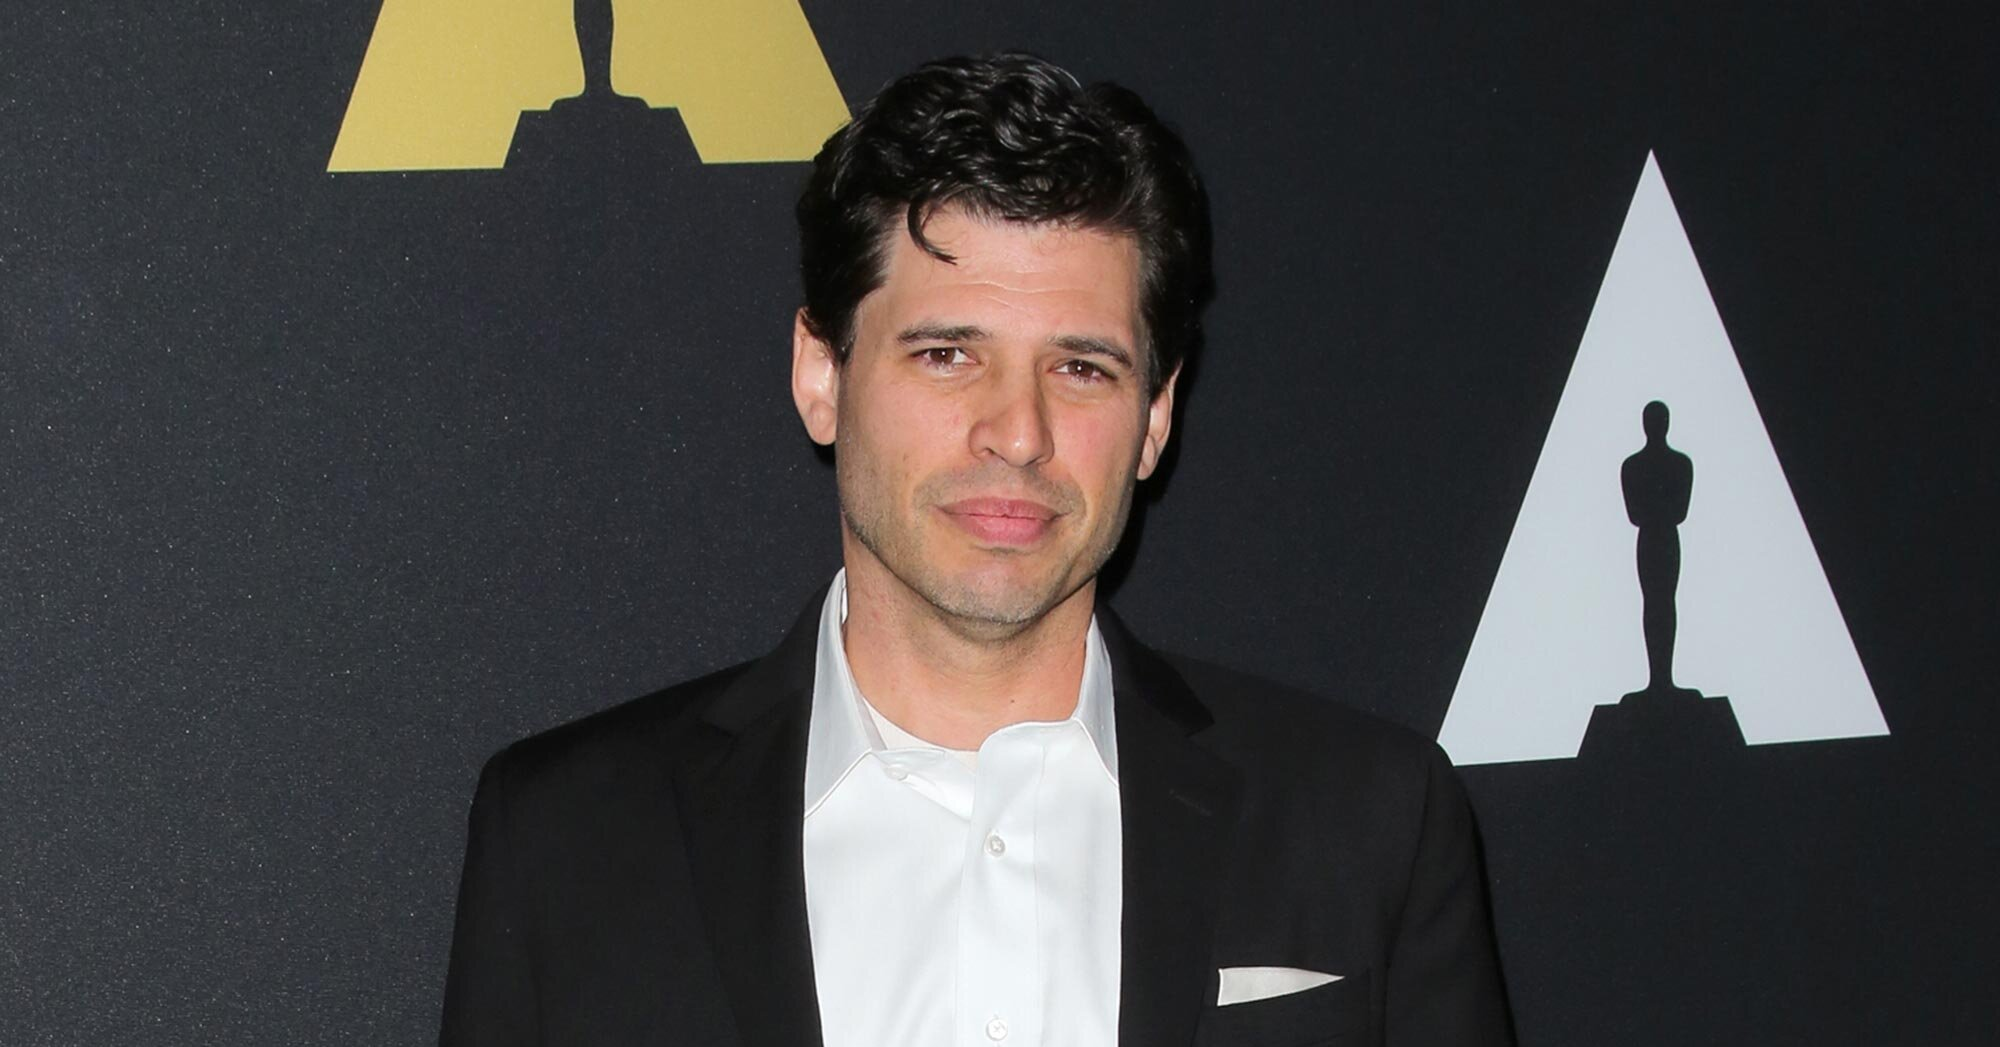 'World War Z' author Max Brooks recommends the book you should read to survive a pandemic